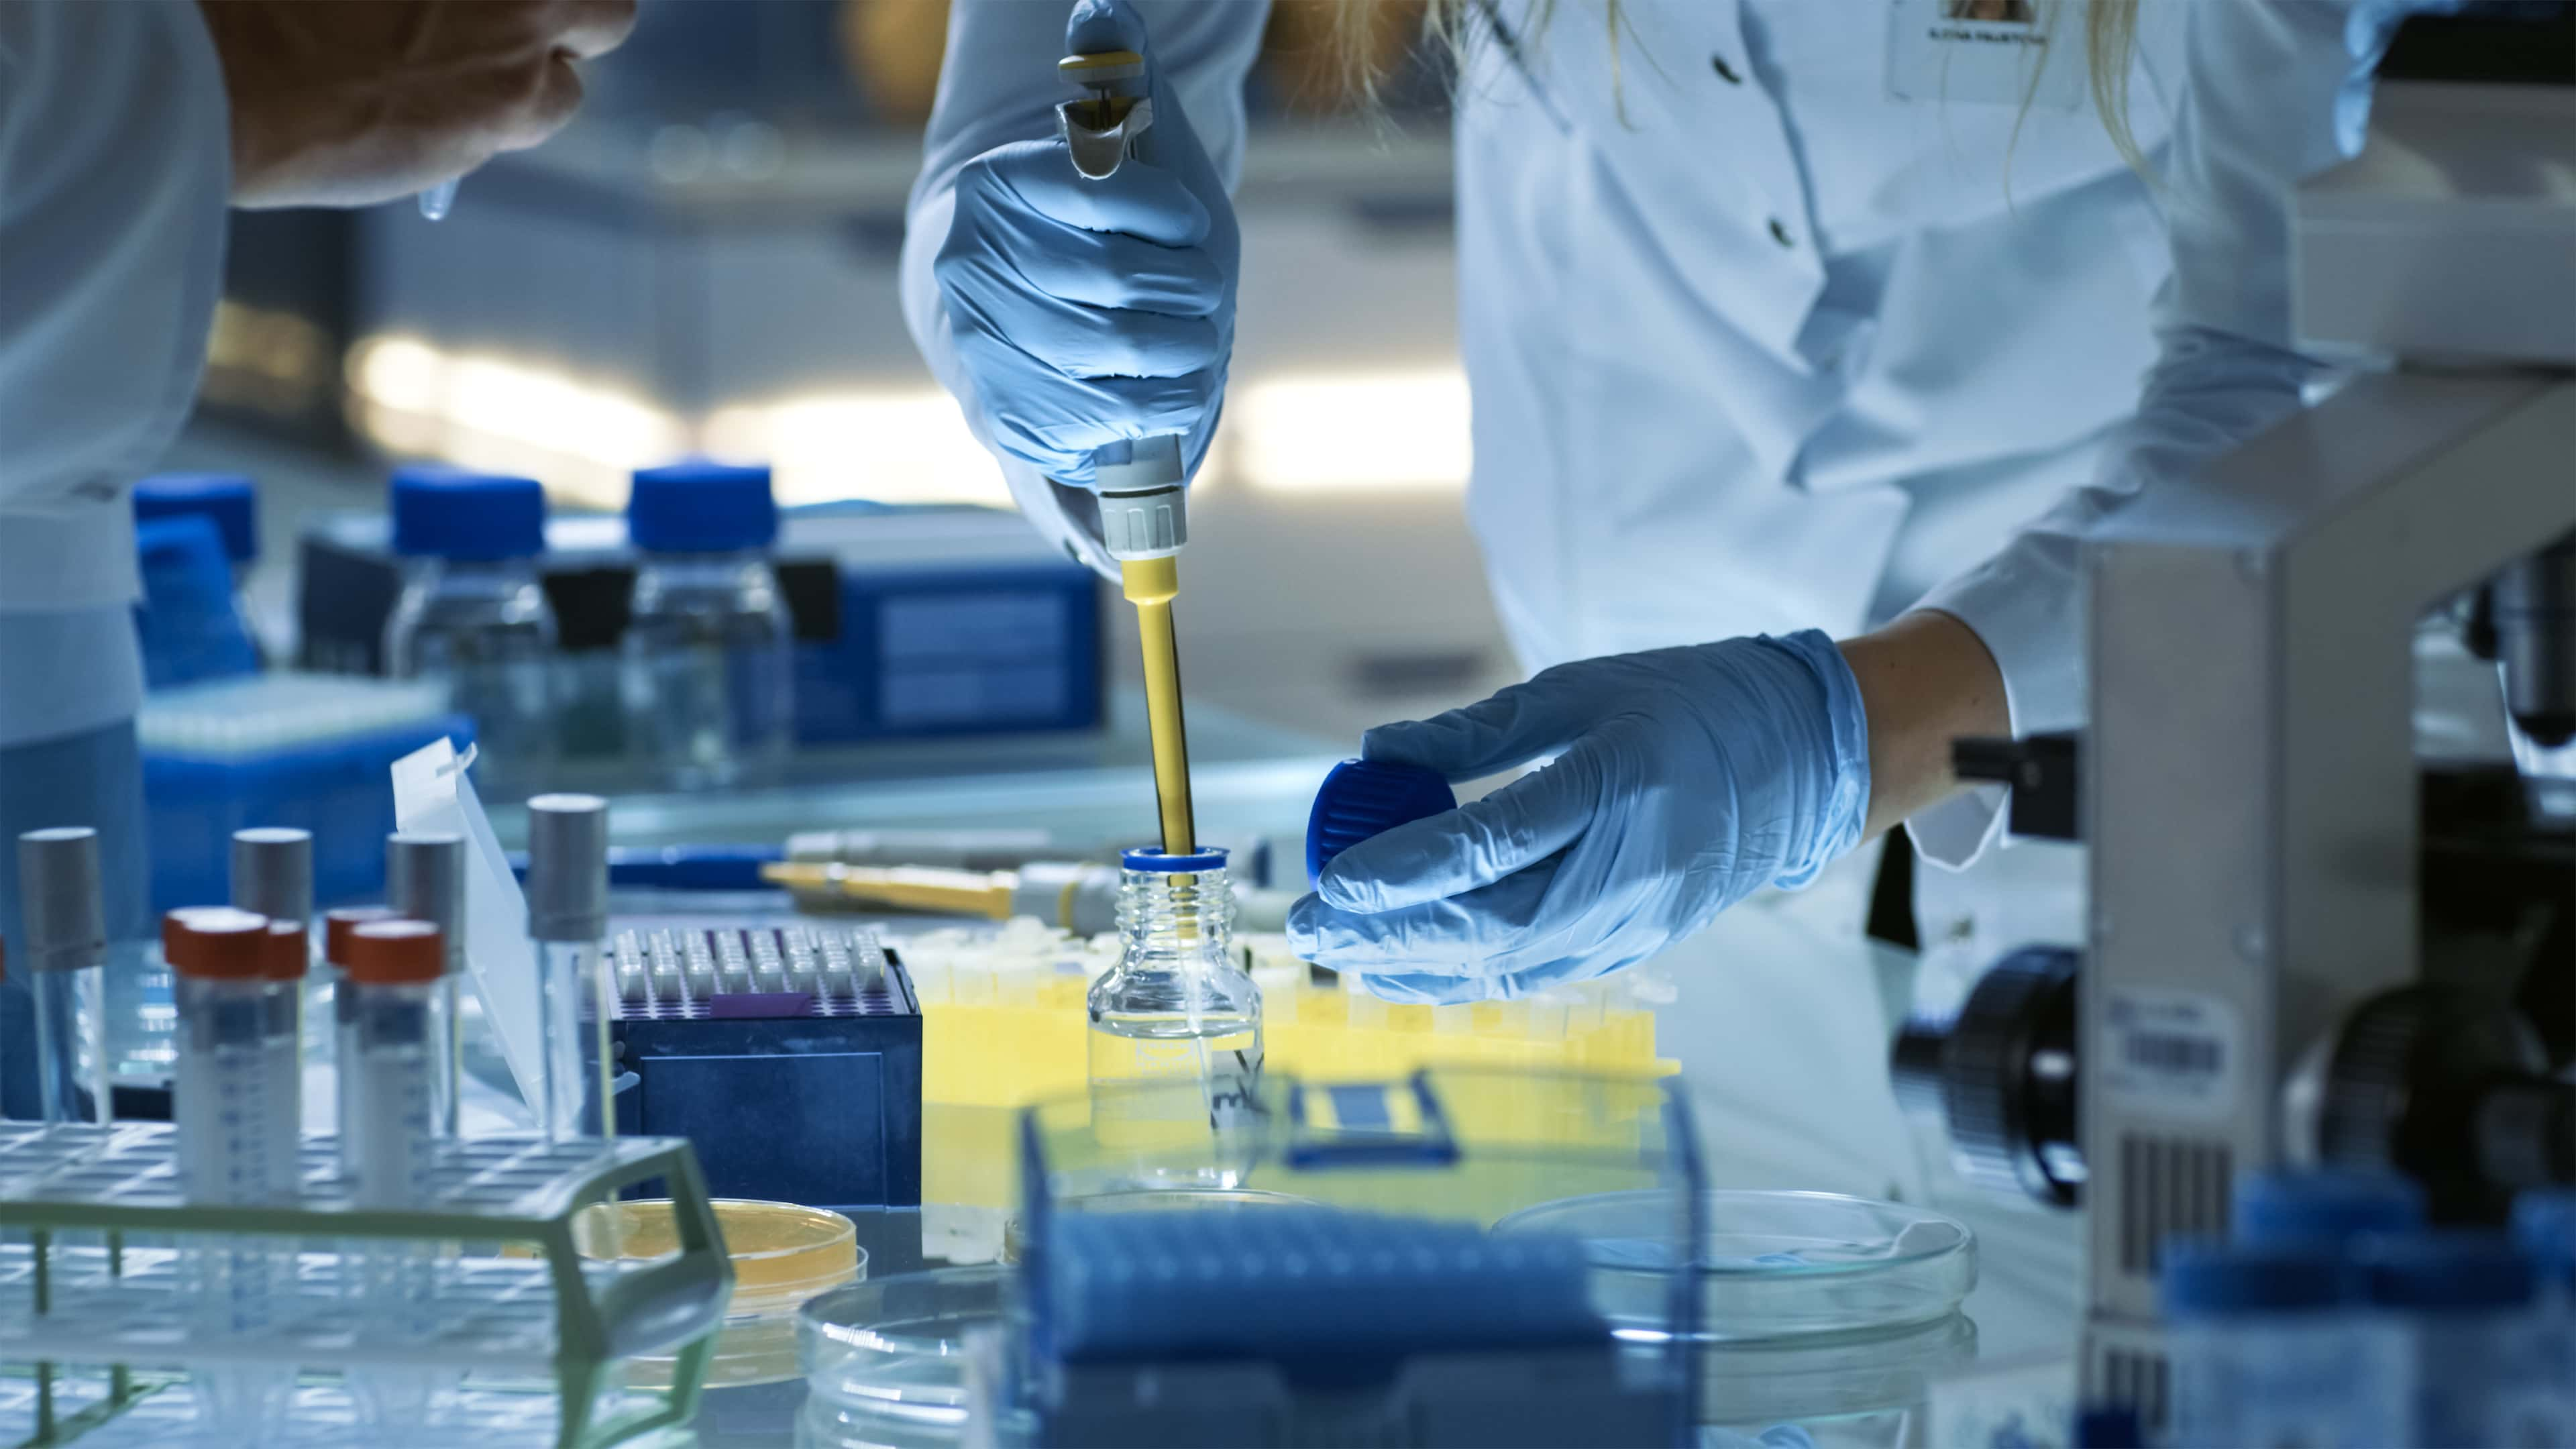 A lab tech's hand holds a pipette over a bottle in a lab